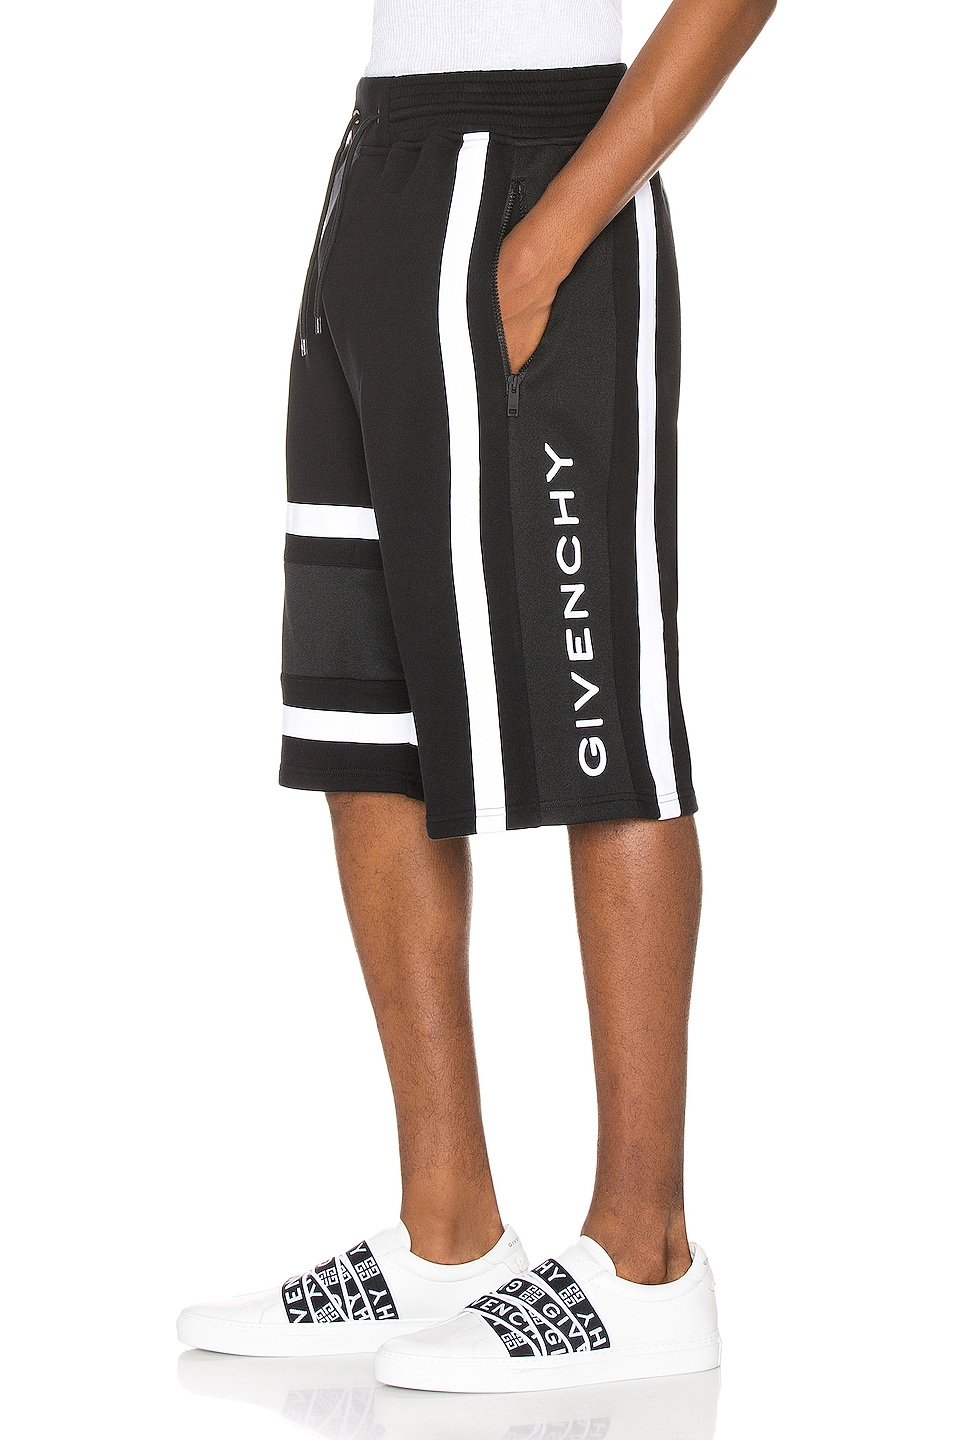 Image 1 of Givenchy Bermuda Band Short in Black & White